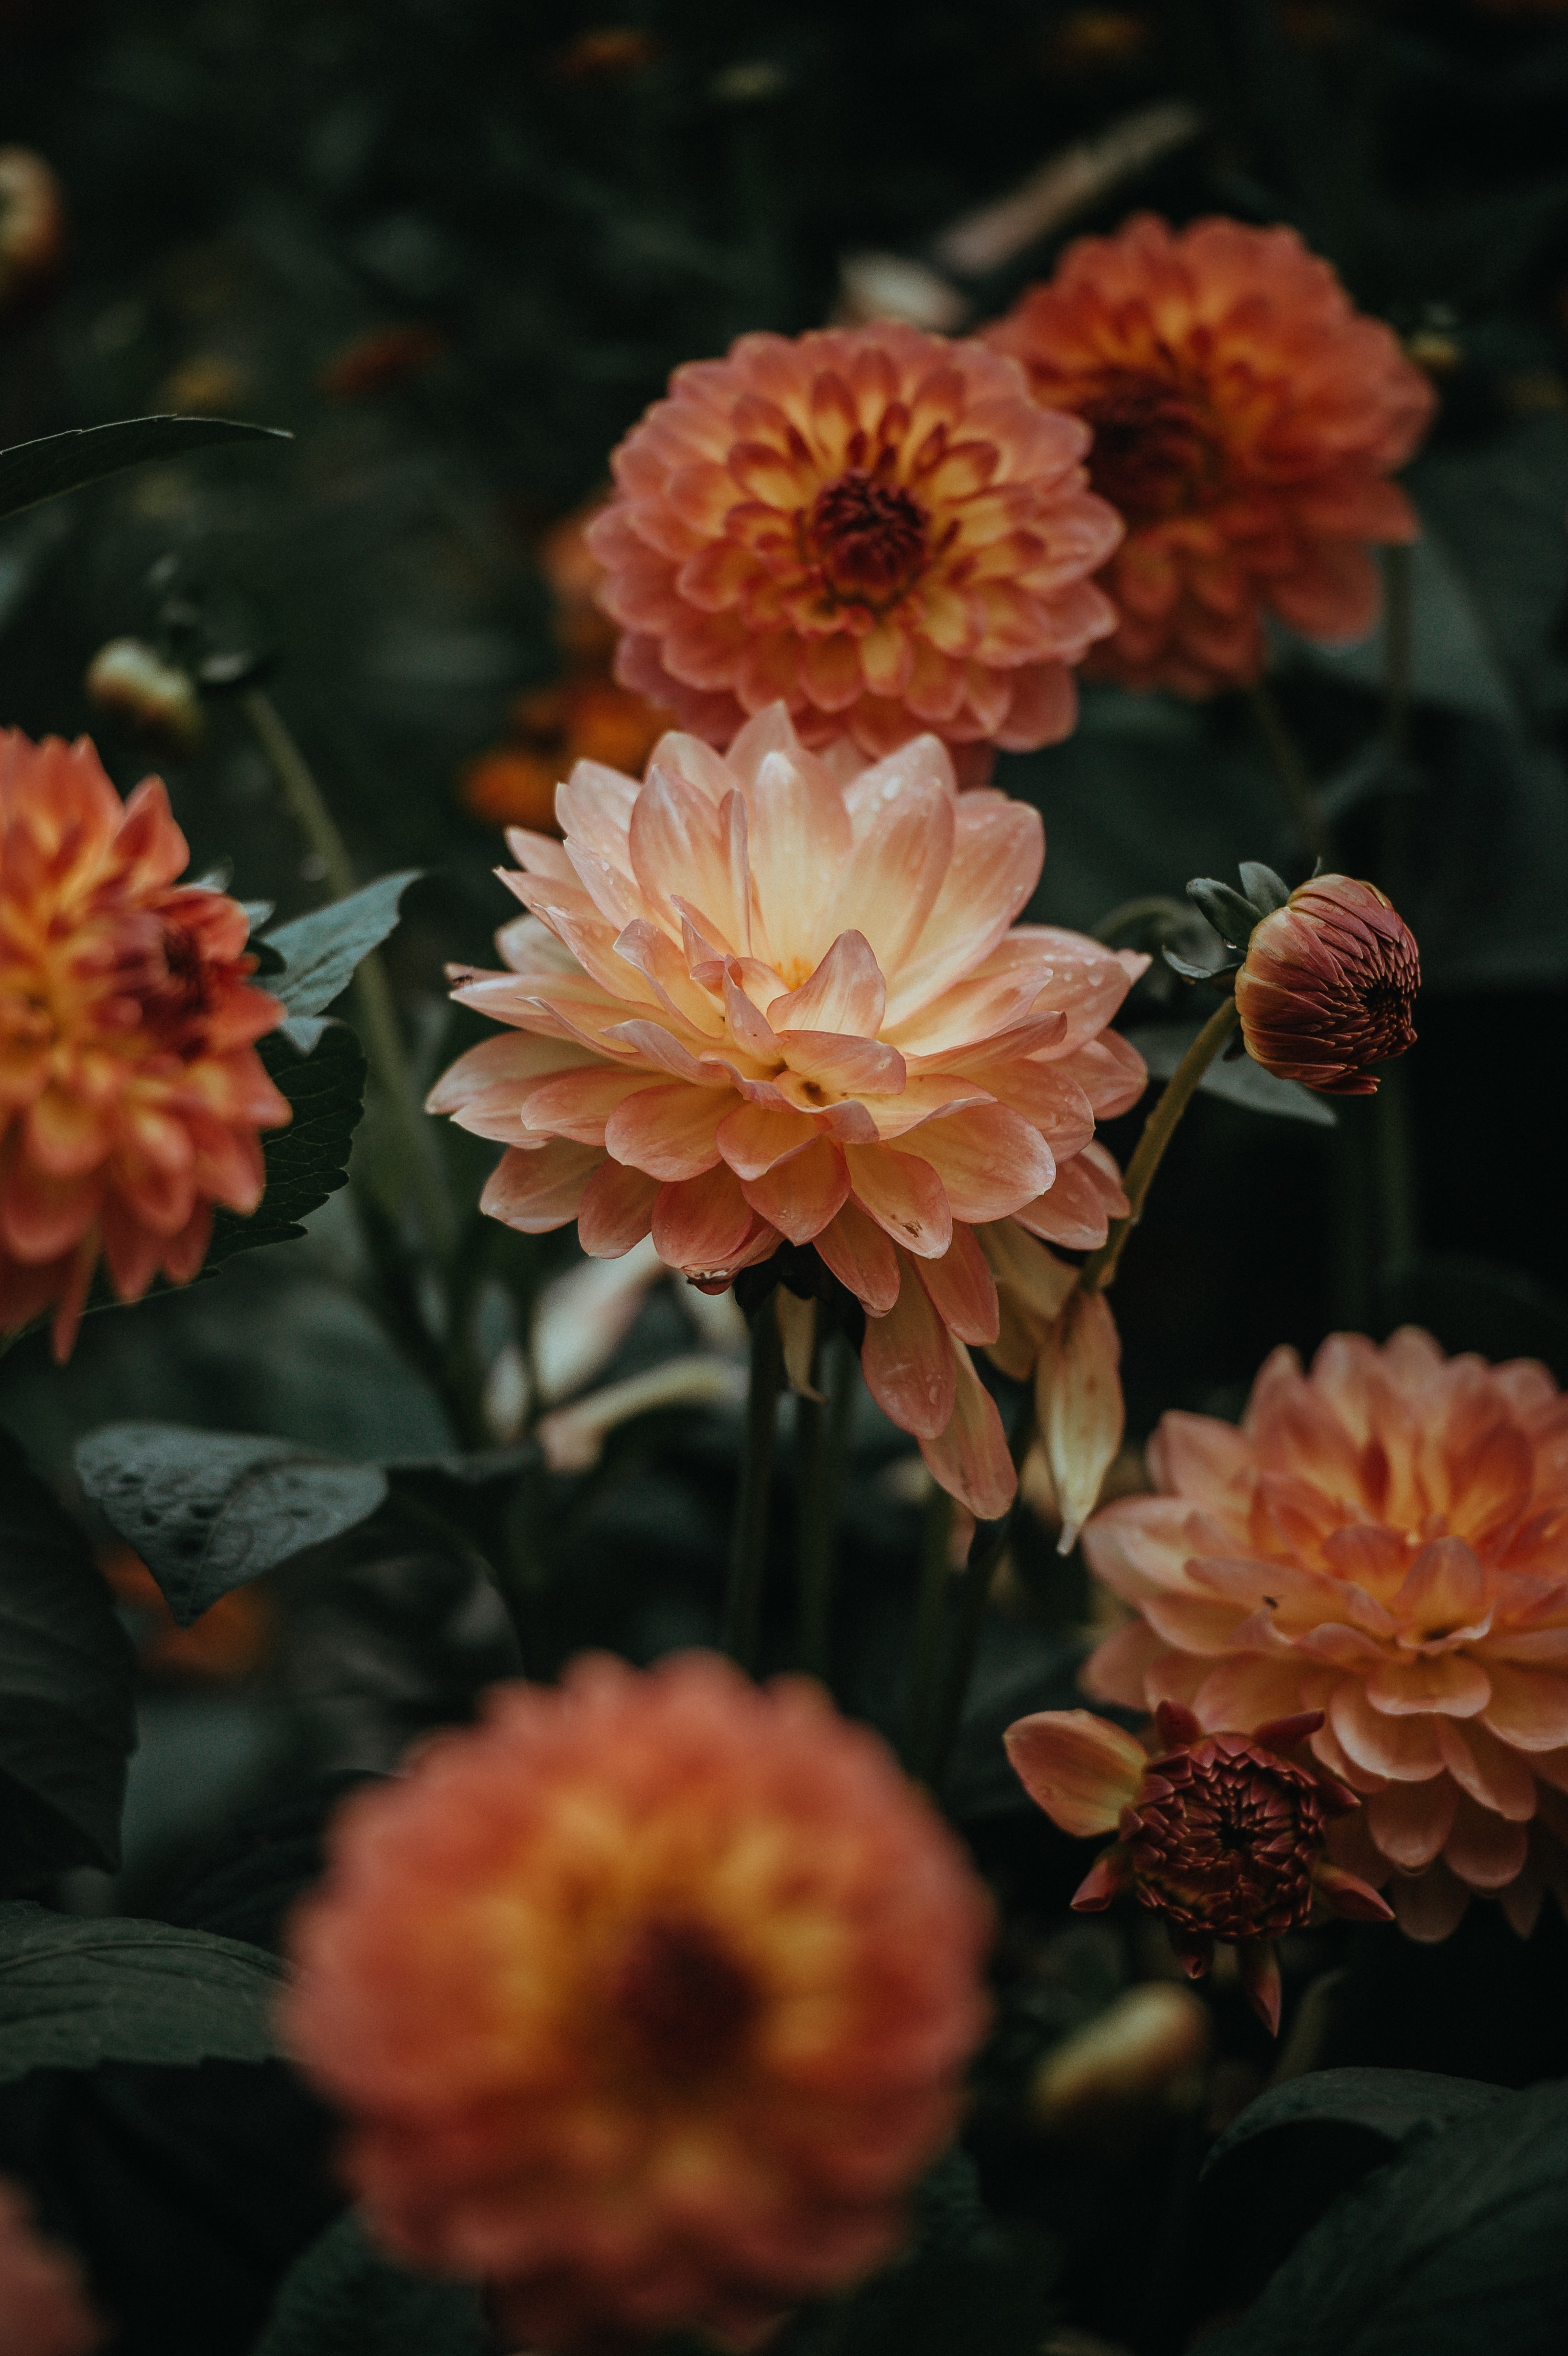 orange dahlia flowers closeup photo